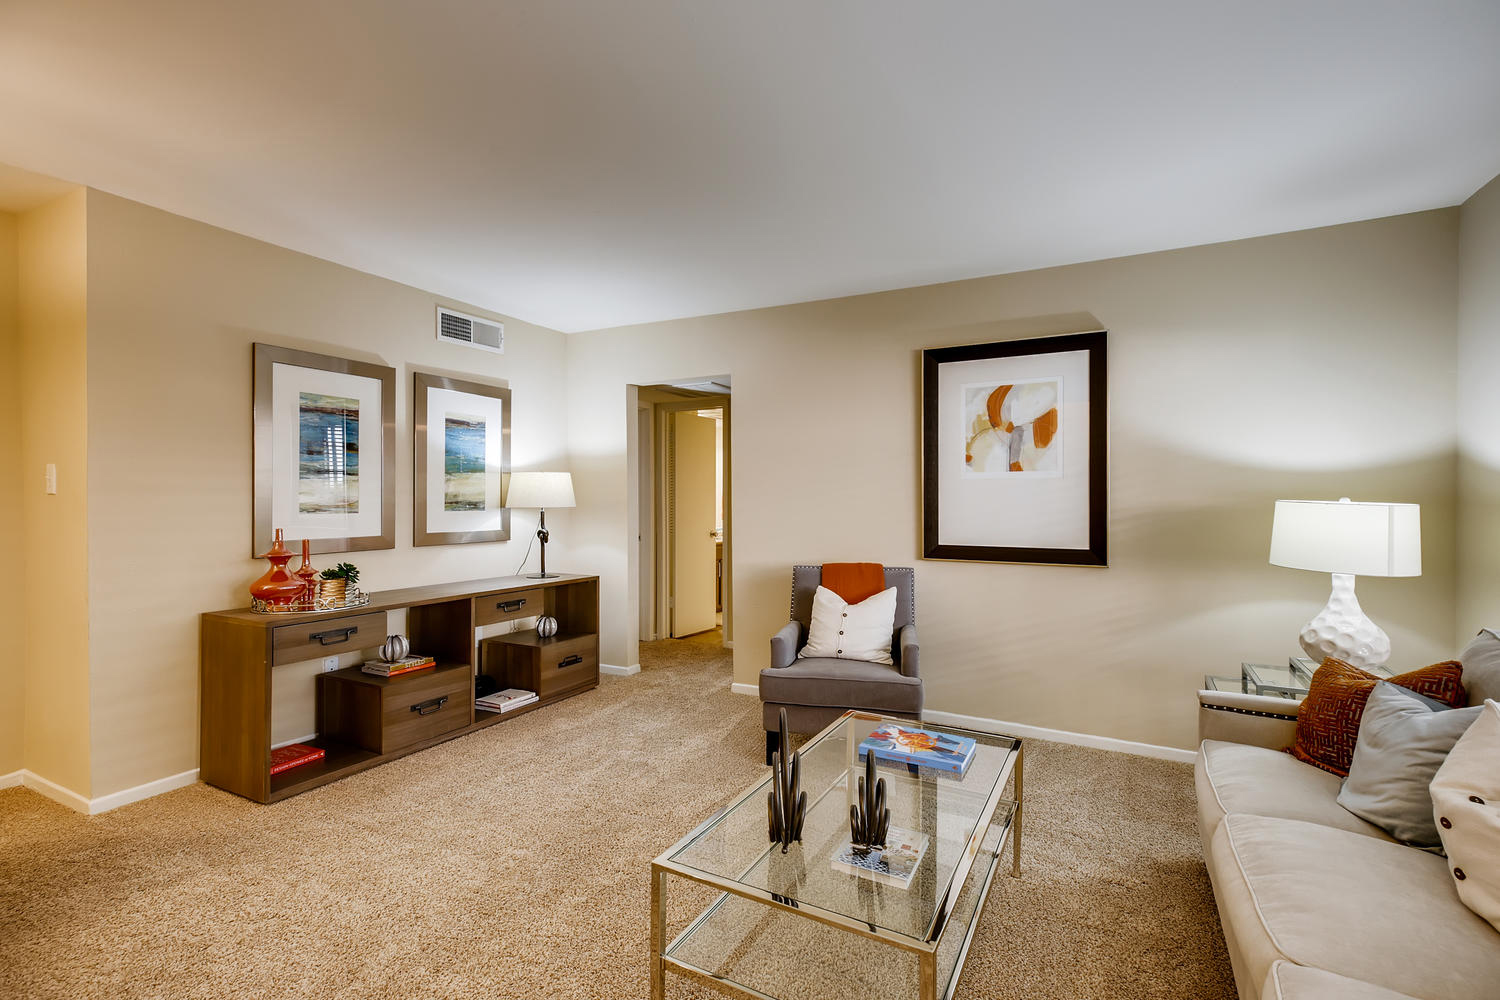 Gallery 3 | The Bordeaux Luxury Apartment living near the Houston Galleria